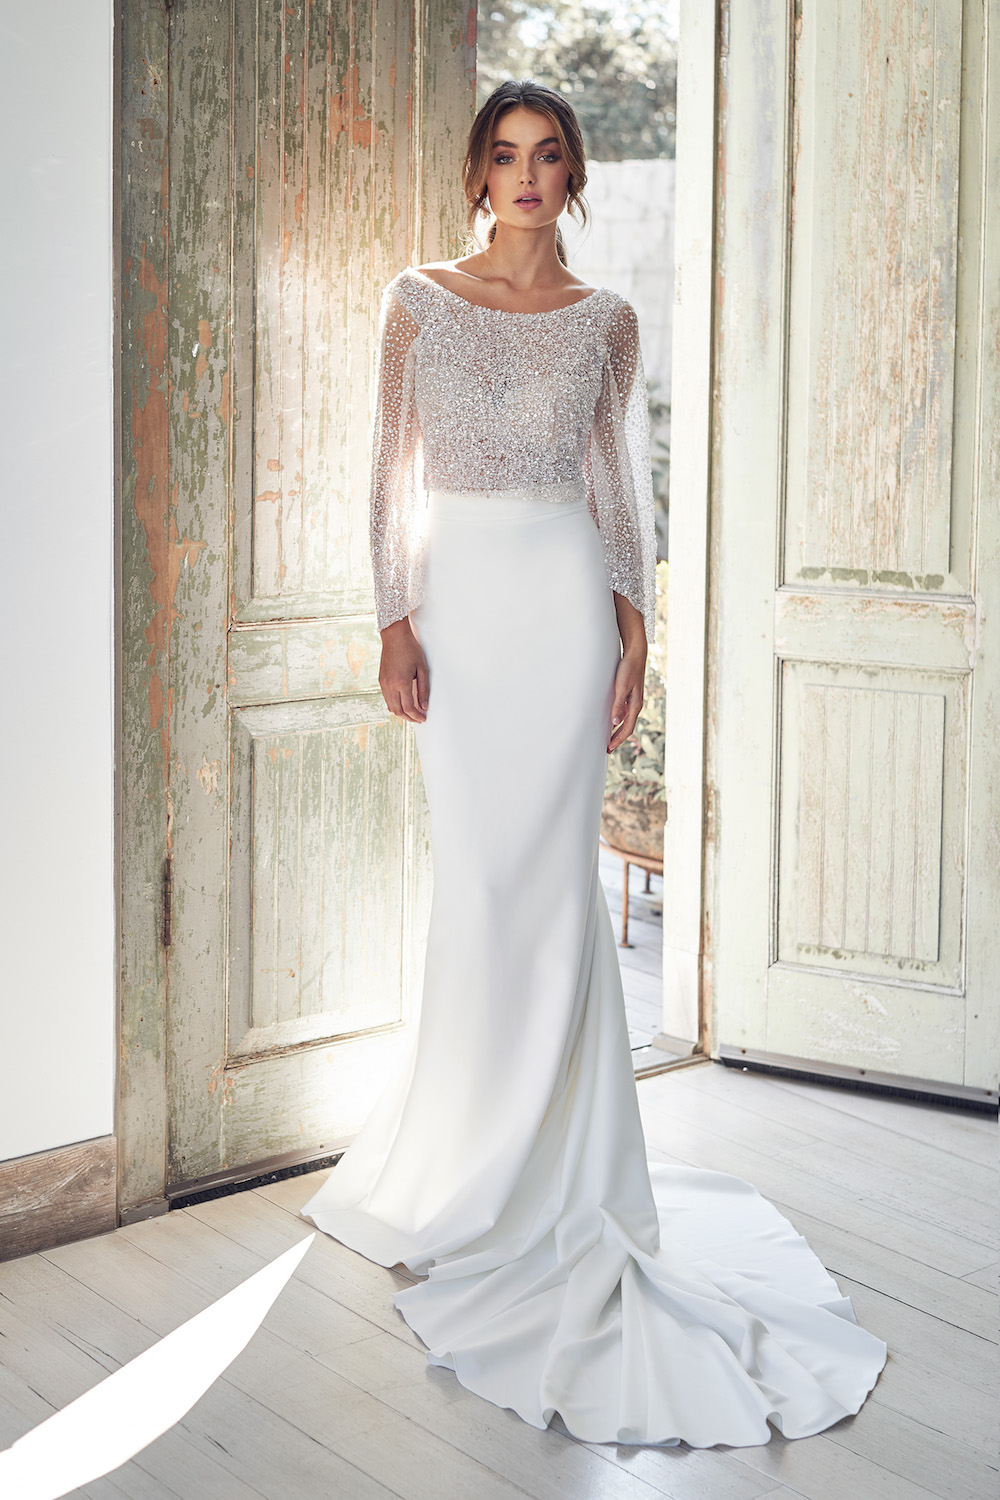 Bridget Topper with Darcy Skirt | Anna Campbell Lumiere Collection | LOVE FIND CO. Bridal Directory